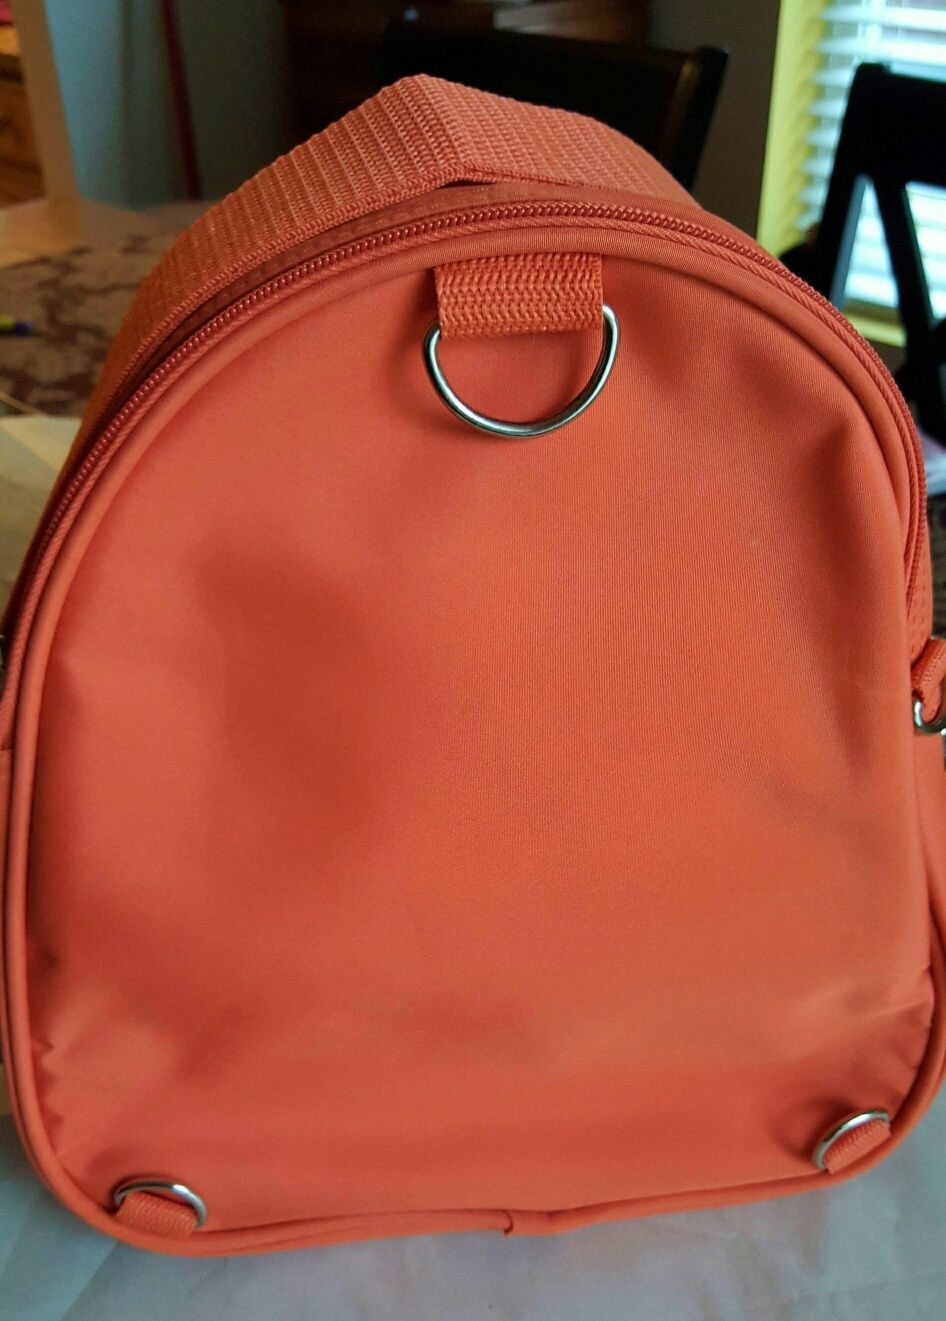 Beyond a Bag 3 Bags in One Backpack, Sling and Duffel Bag NWT image 11